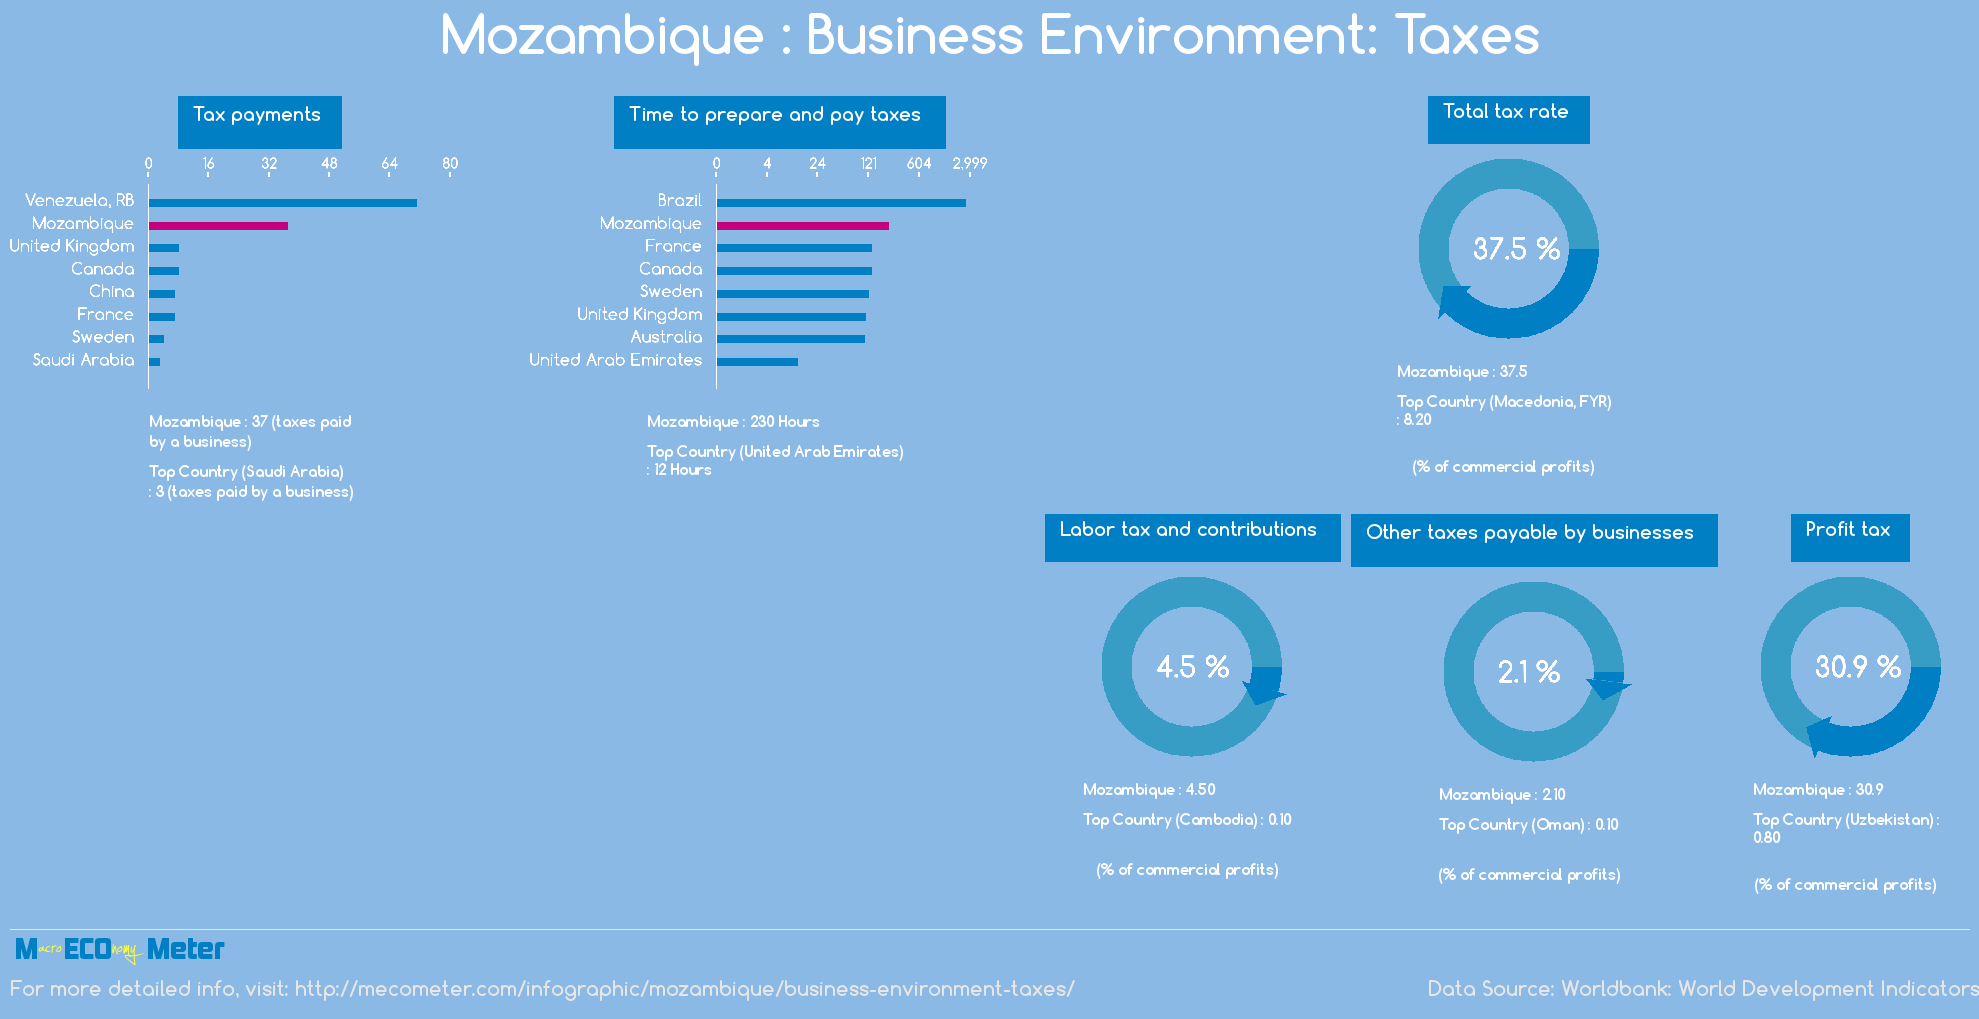 Mozambique : Business Environment: Taxes